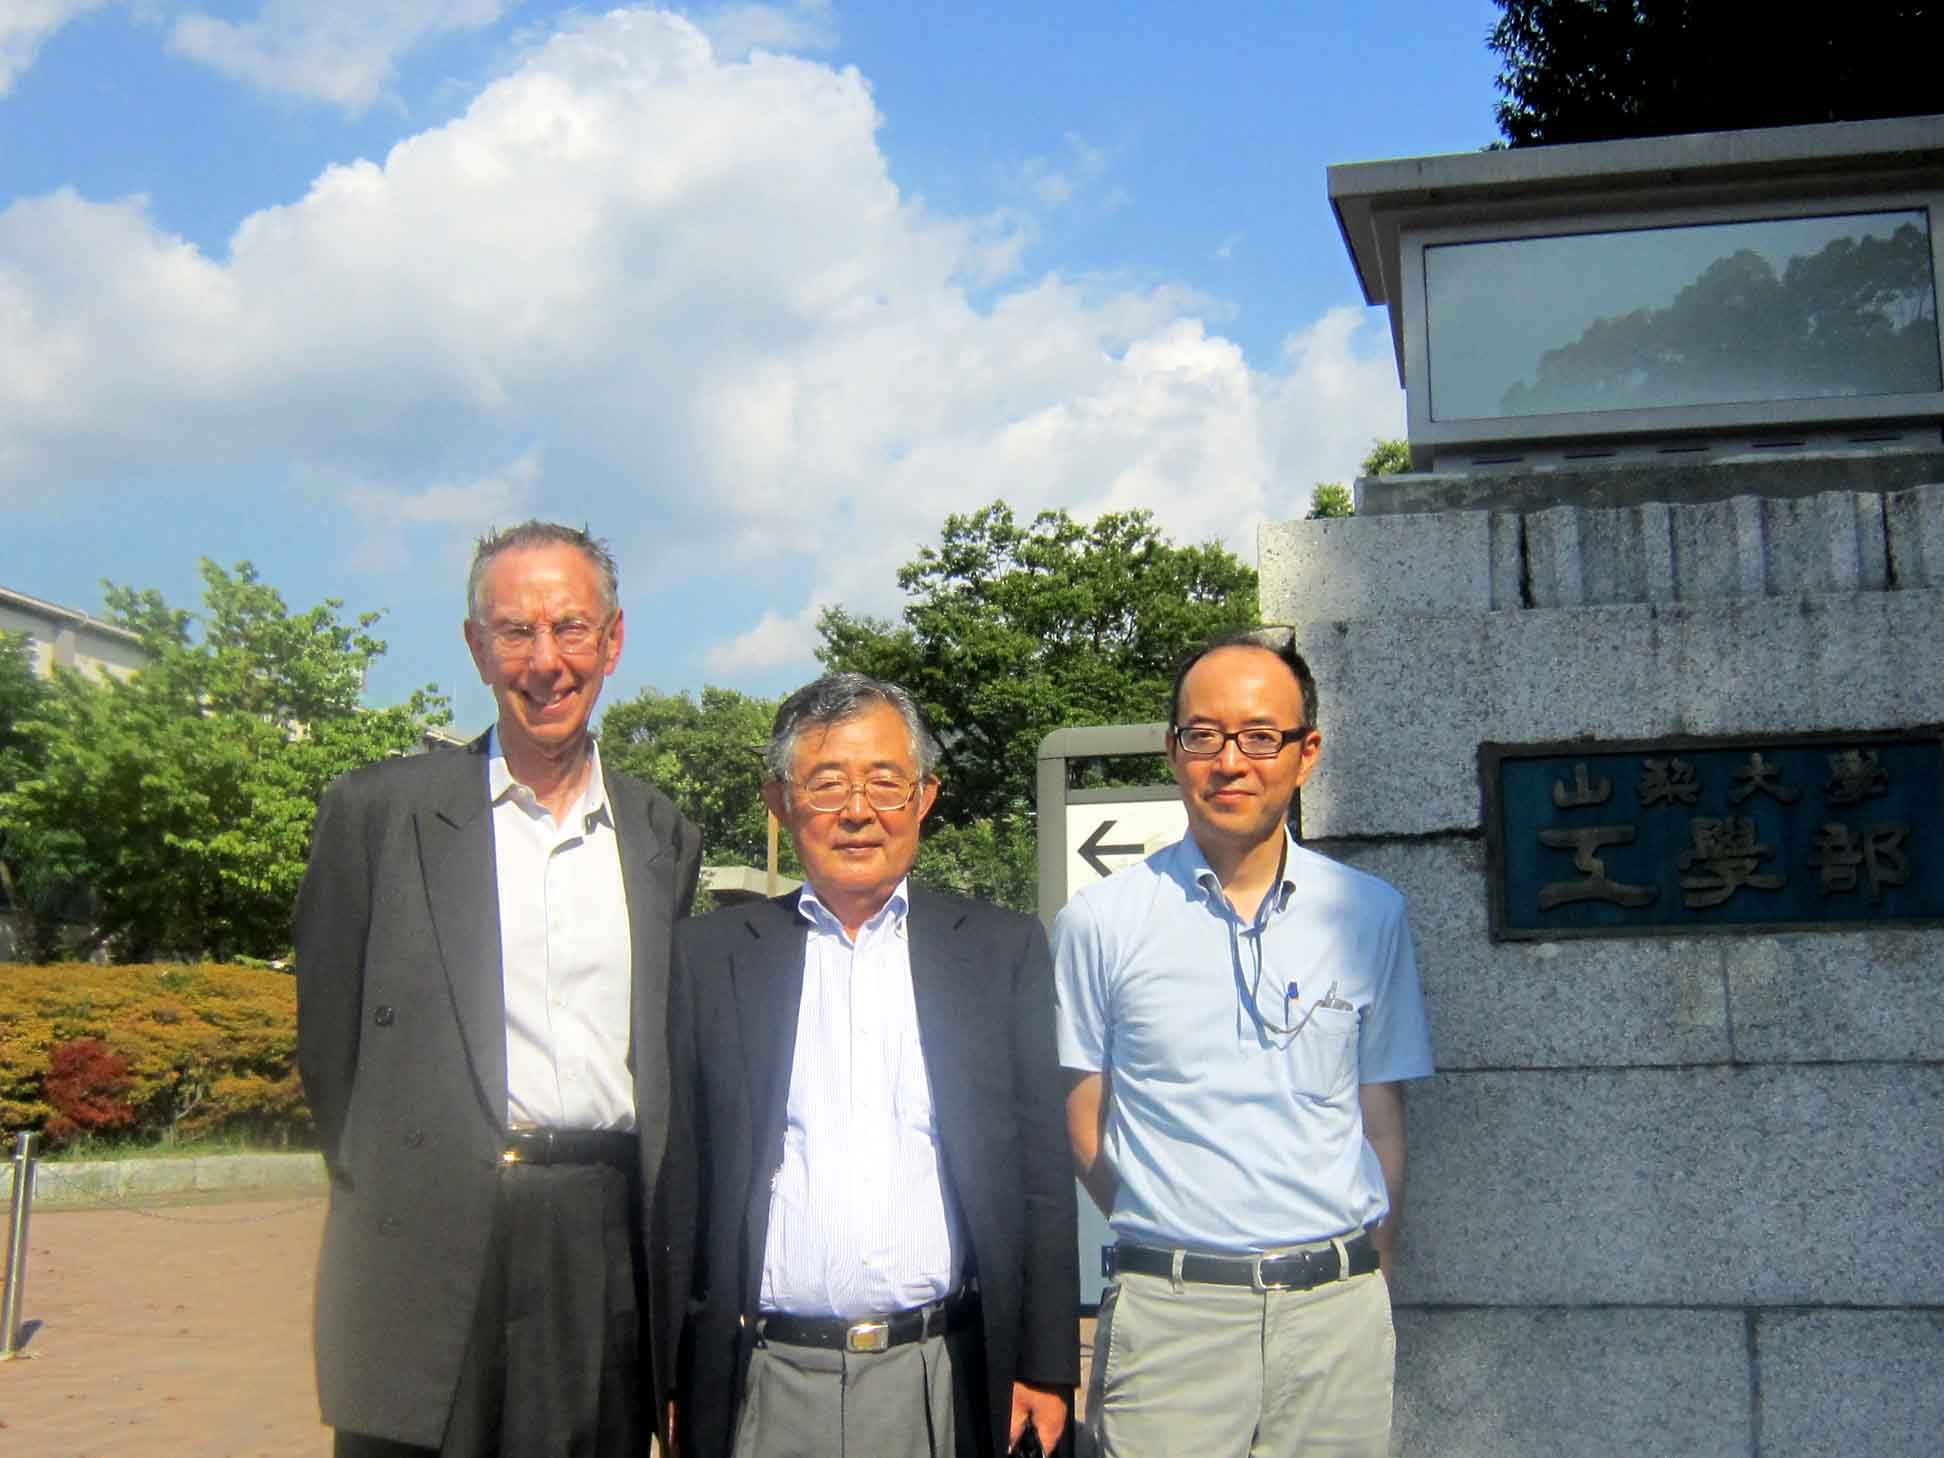 ATIP visits Professor Koji YANO at the University of Yamanashi's Department of Material Science and Engineering (August 22, 2013)